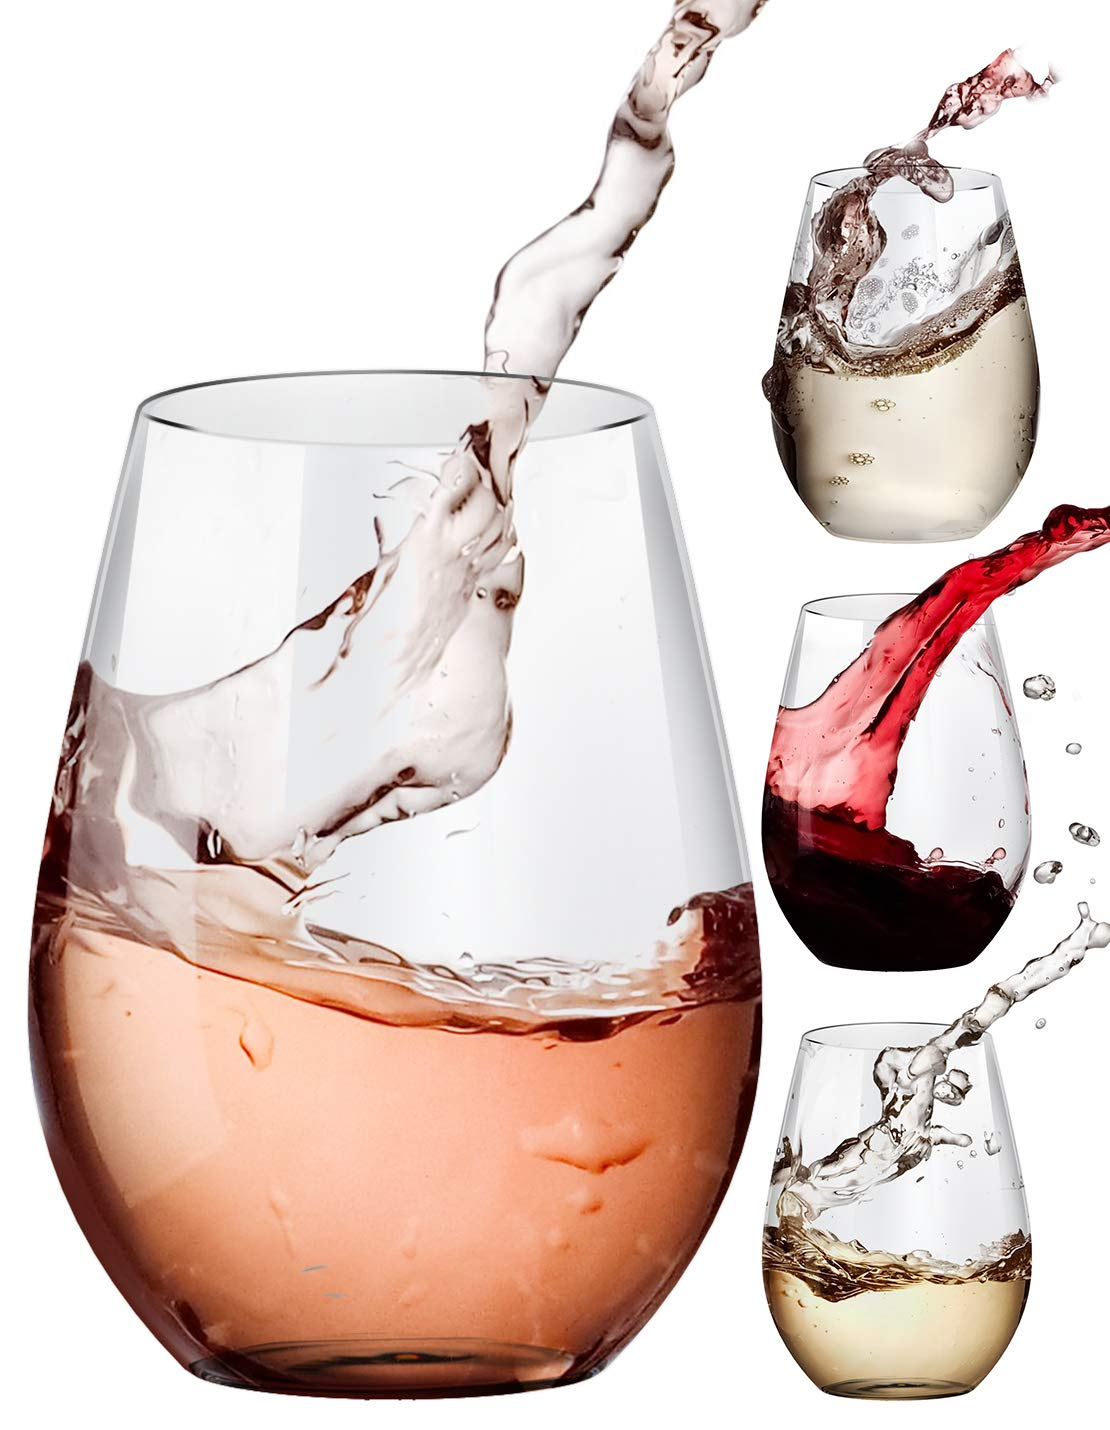 Stemless Wine Glasses, 20- Ounce, Drinking Glass Set, Tumbler Cup, Clear, 4- Piece, Ideal for Red and White Wine, Juice, Water, Kitchen Glassware, Beach, Wedding and Party Gifts - Amallino by Amallino (Image #1)